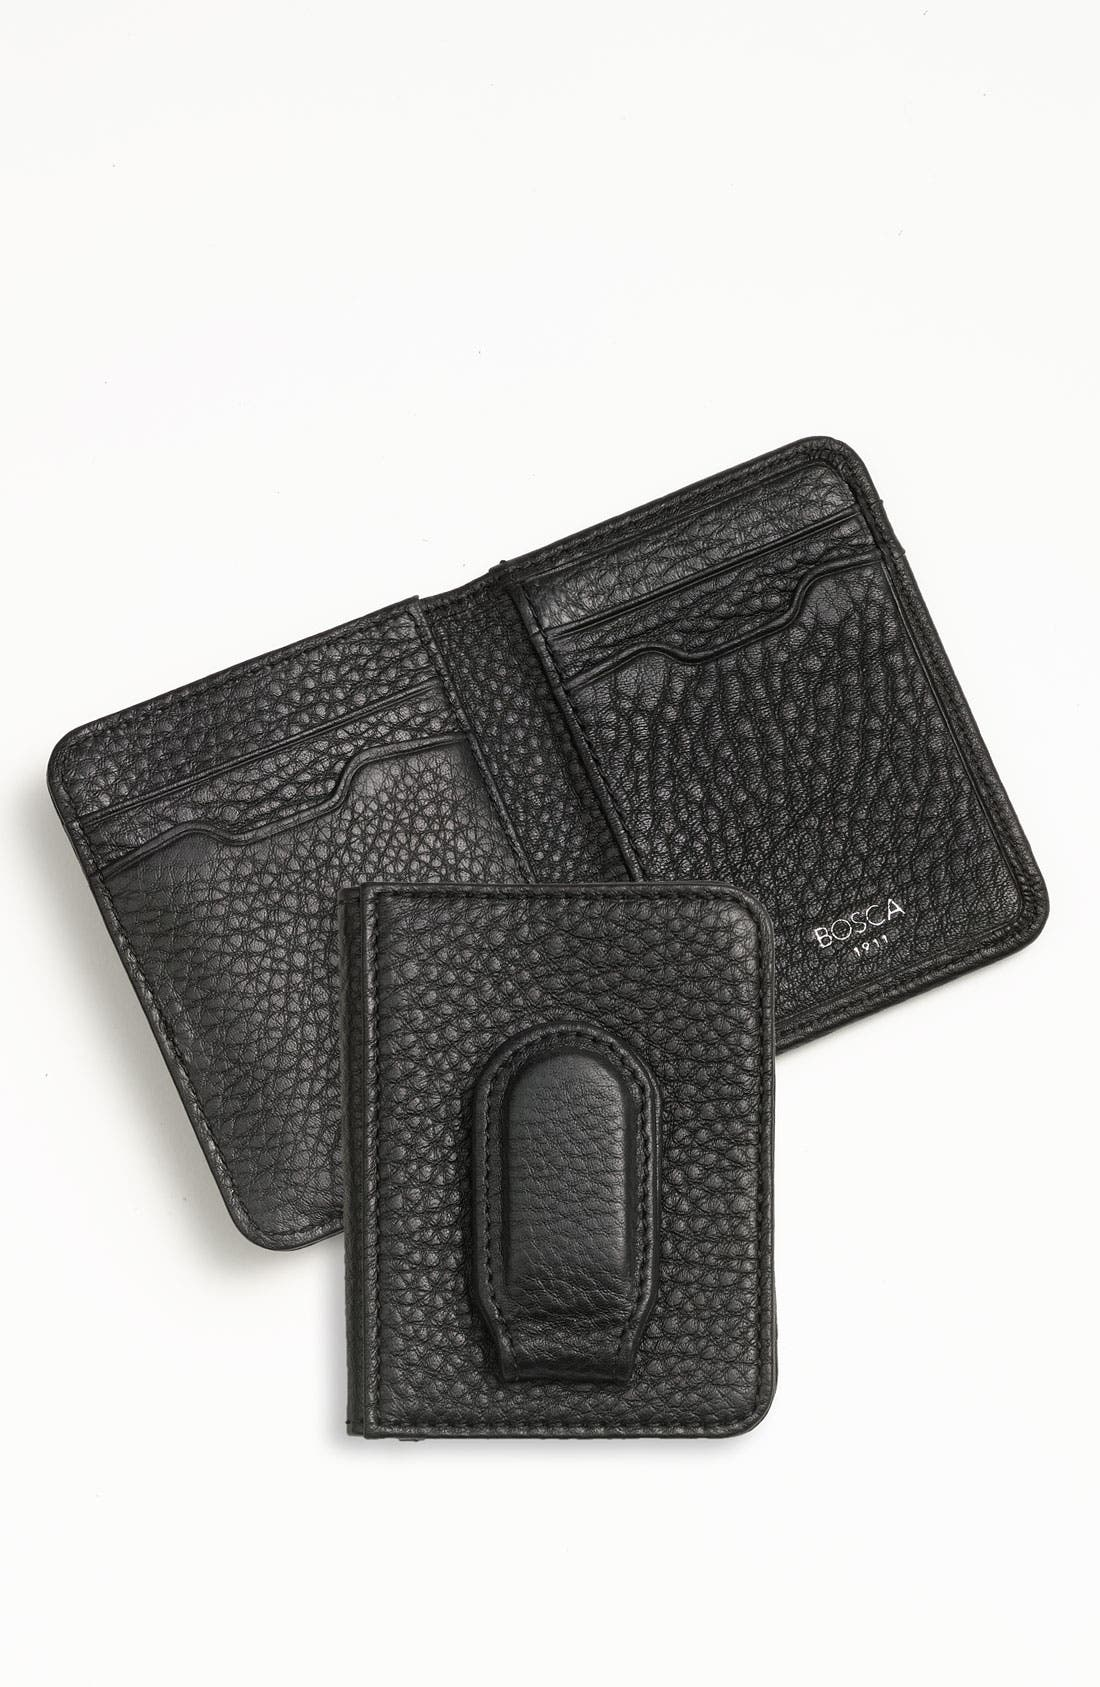 Alternate Image 1 Selected - Bosca Front Pocket Wallet